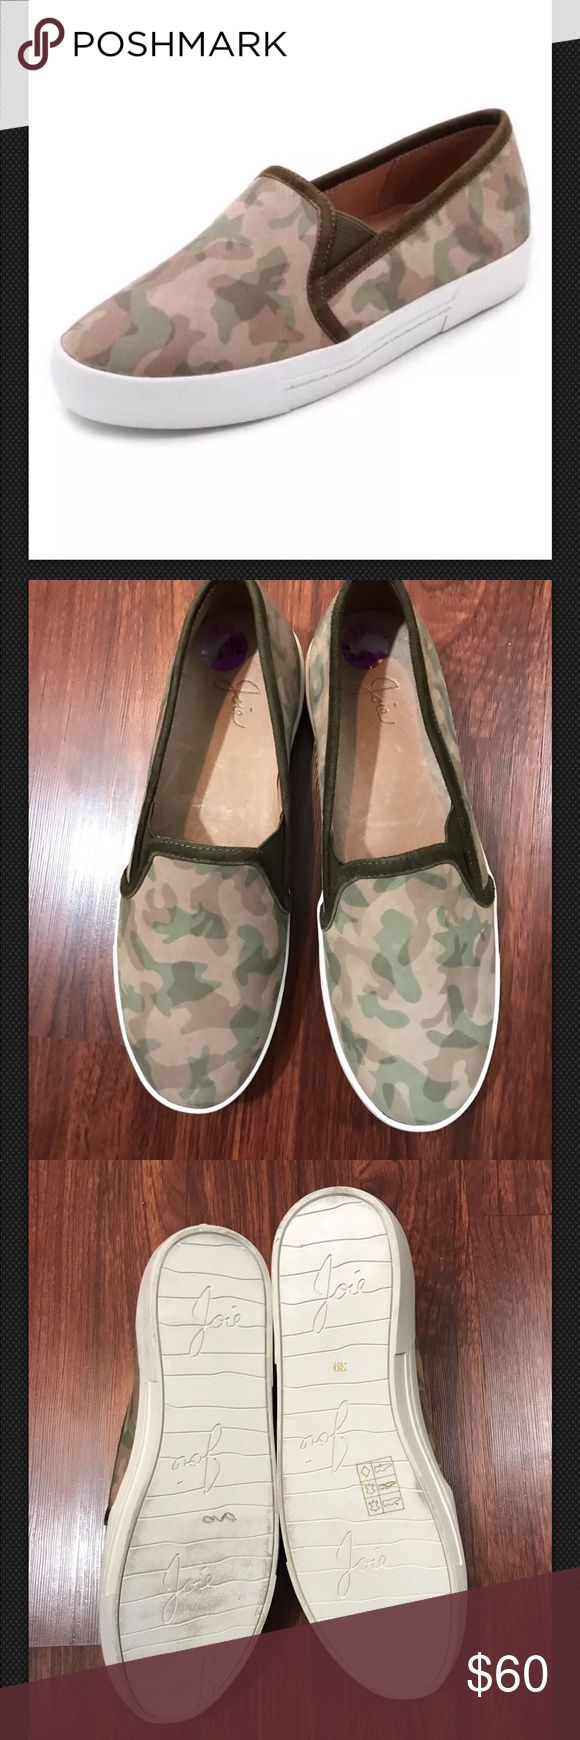 JOIE Huxley Slip On Sneakers Camo Tan Brown Green Shoe was a store display and does not come with dust bag or box Joie Shoes Athletic Shoes